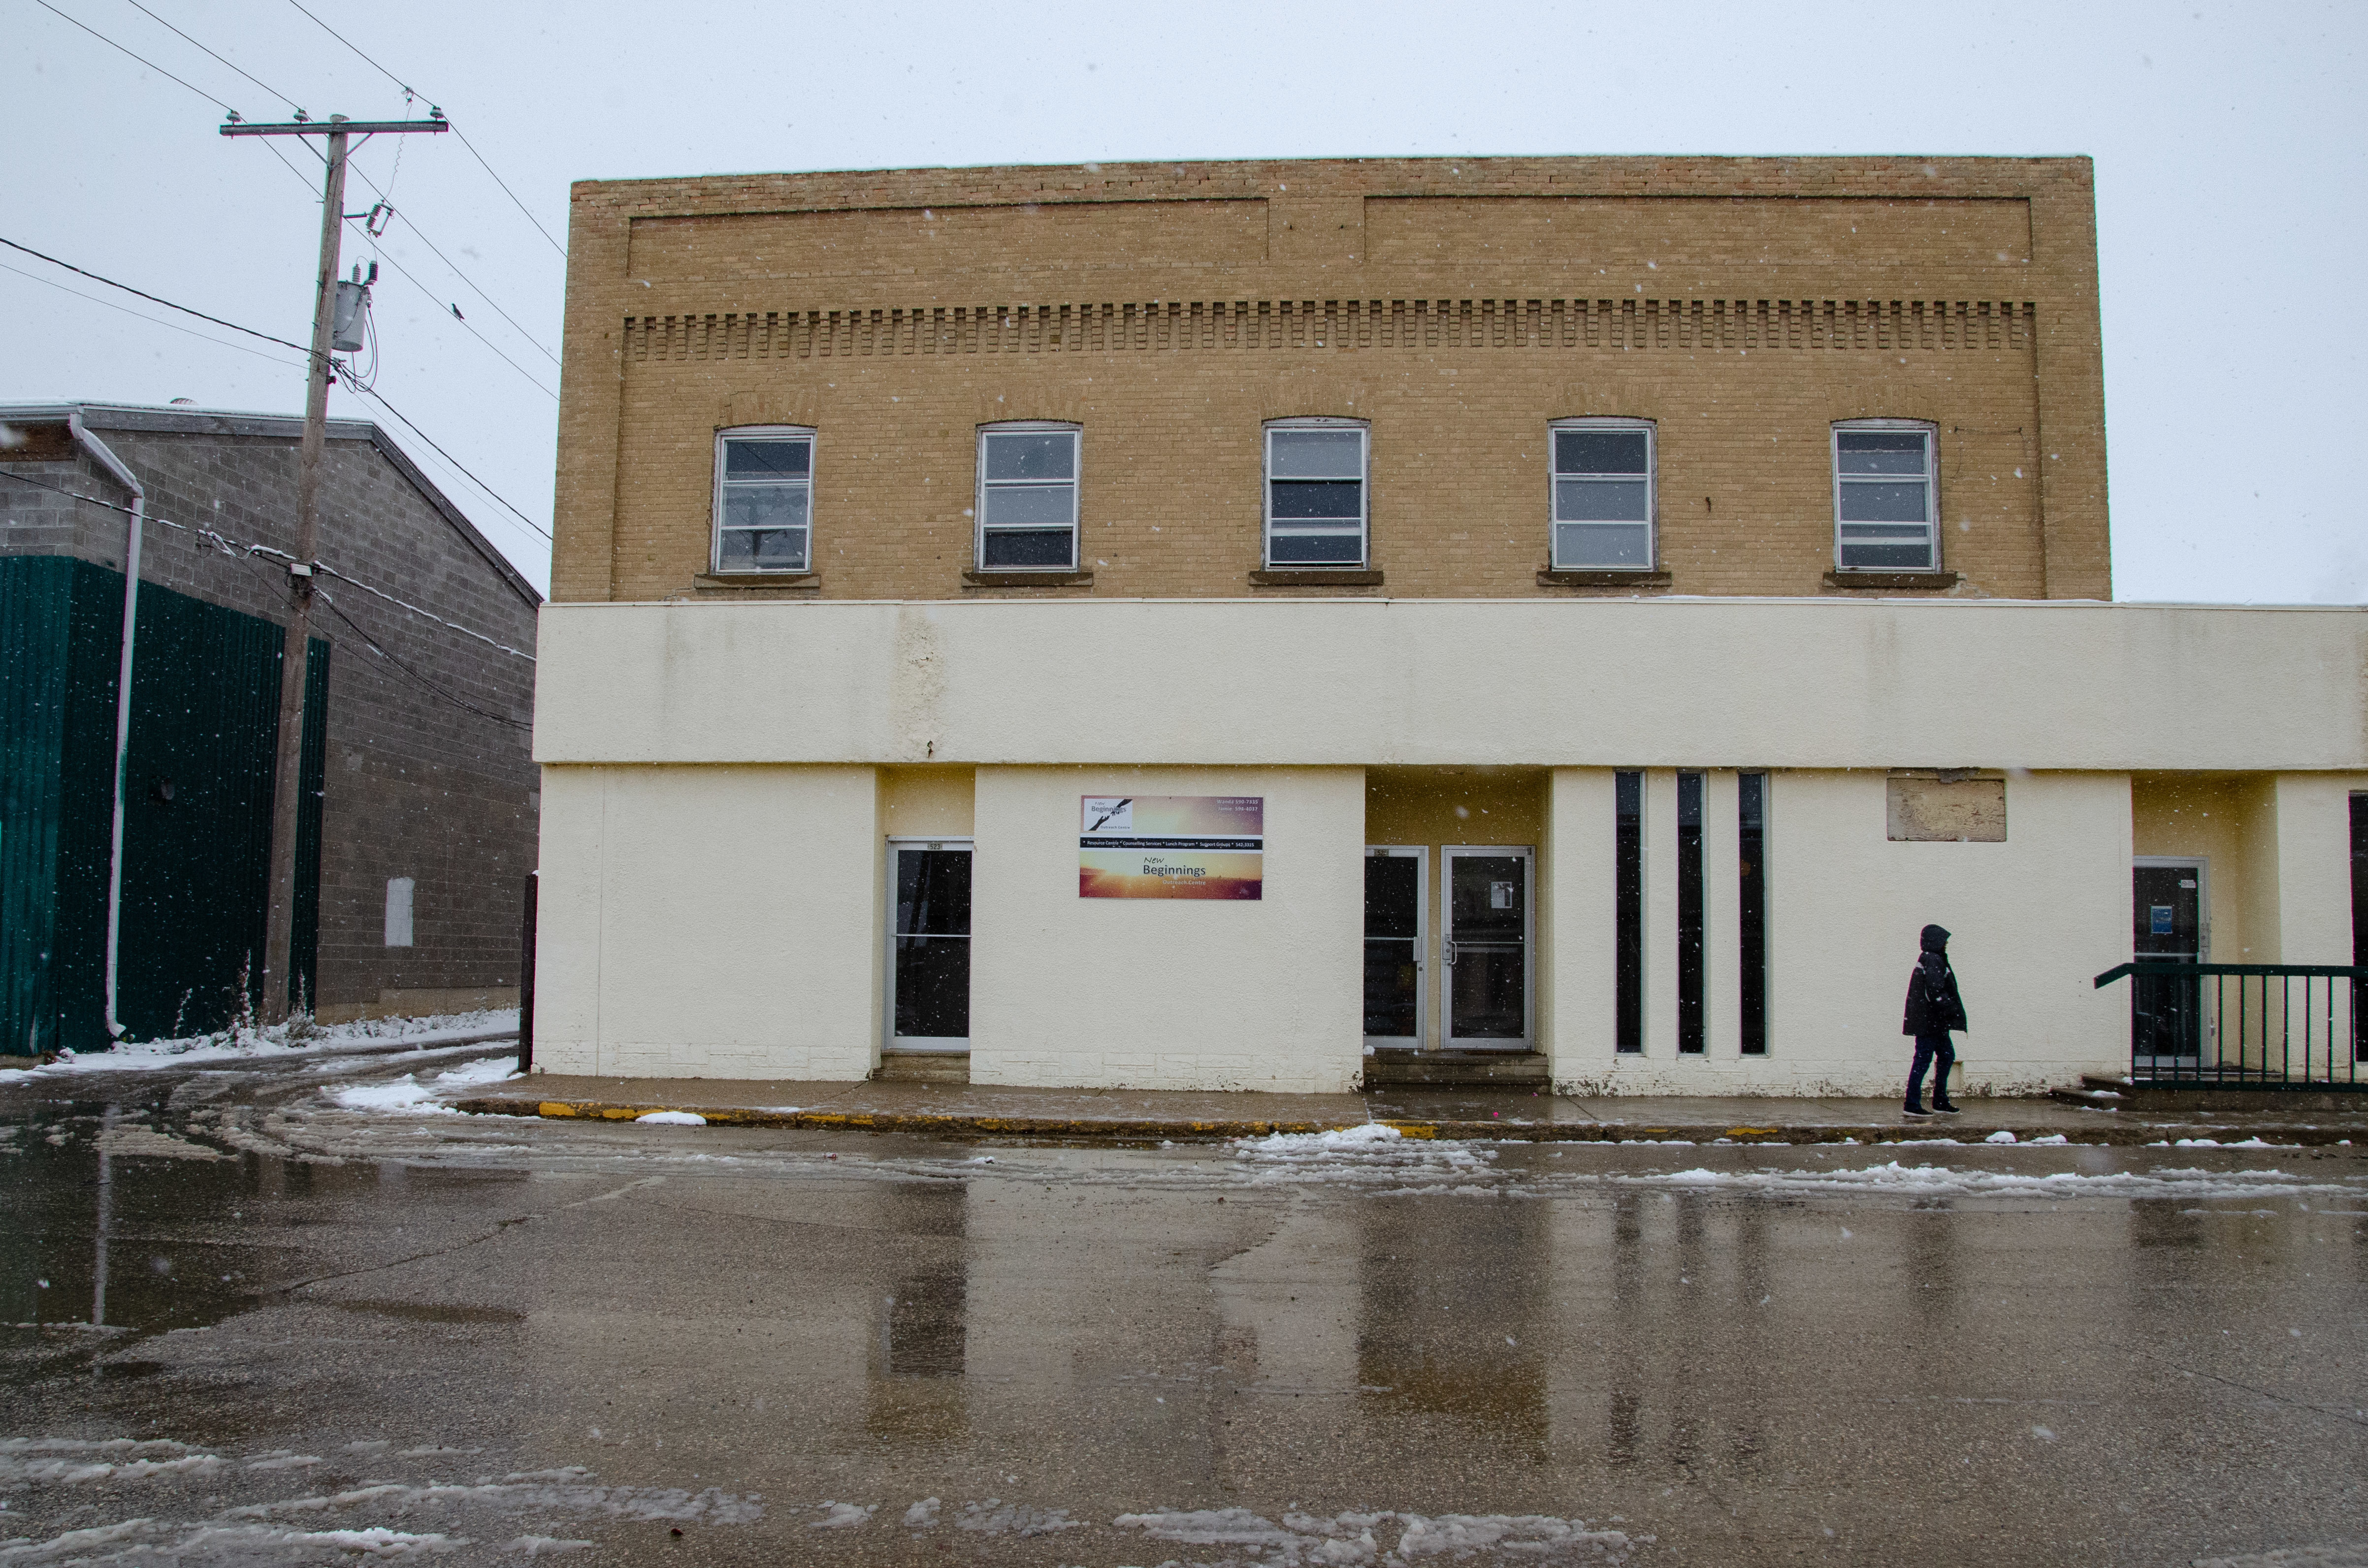 The demand is constant for the New Beginnings Outreach Centre, which filled a gap in the community. There, programming is offered to those who seek to change and a welcoming atmosphere is created for those who aren't yet ready to.